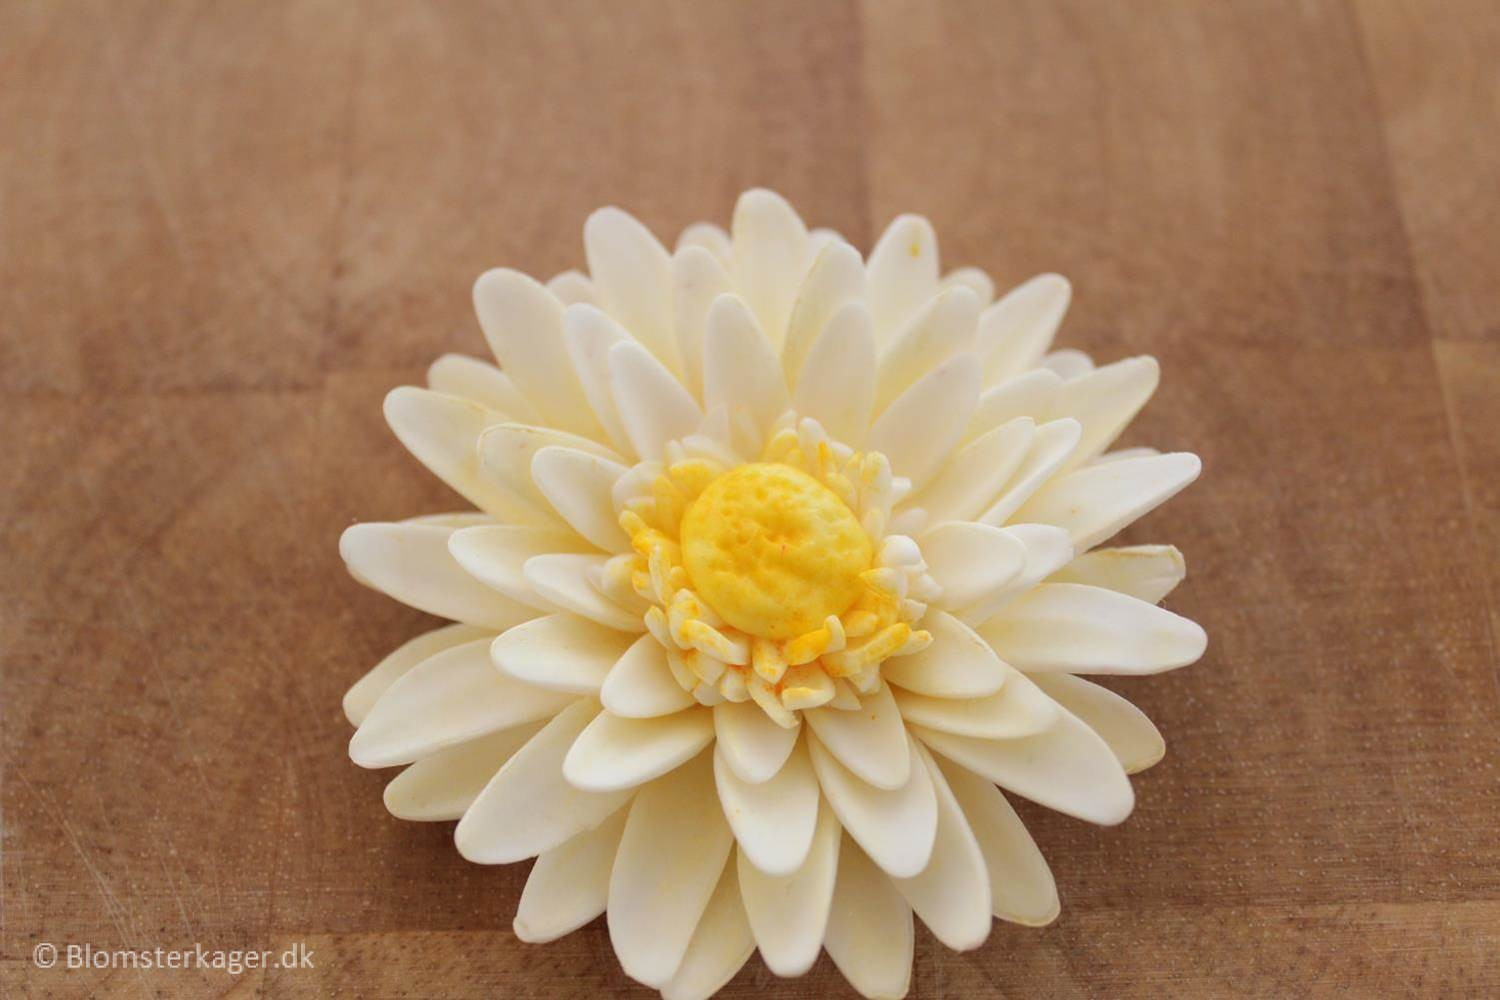 How To Make A Gerbera Daisy From Fondant Or Gum Paste